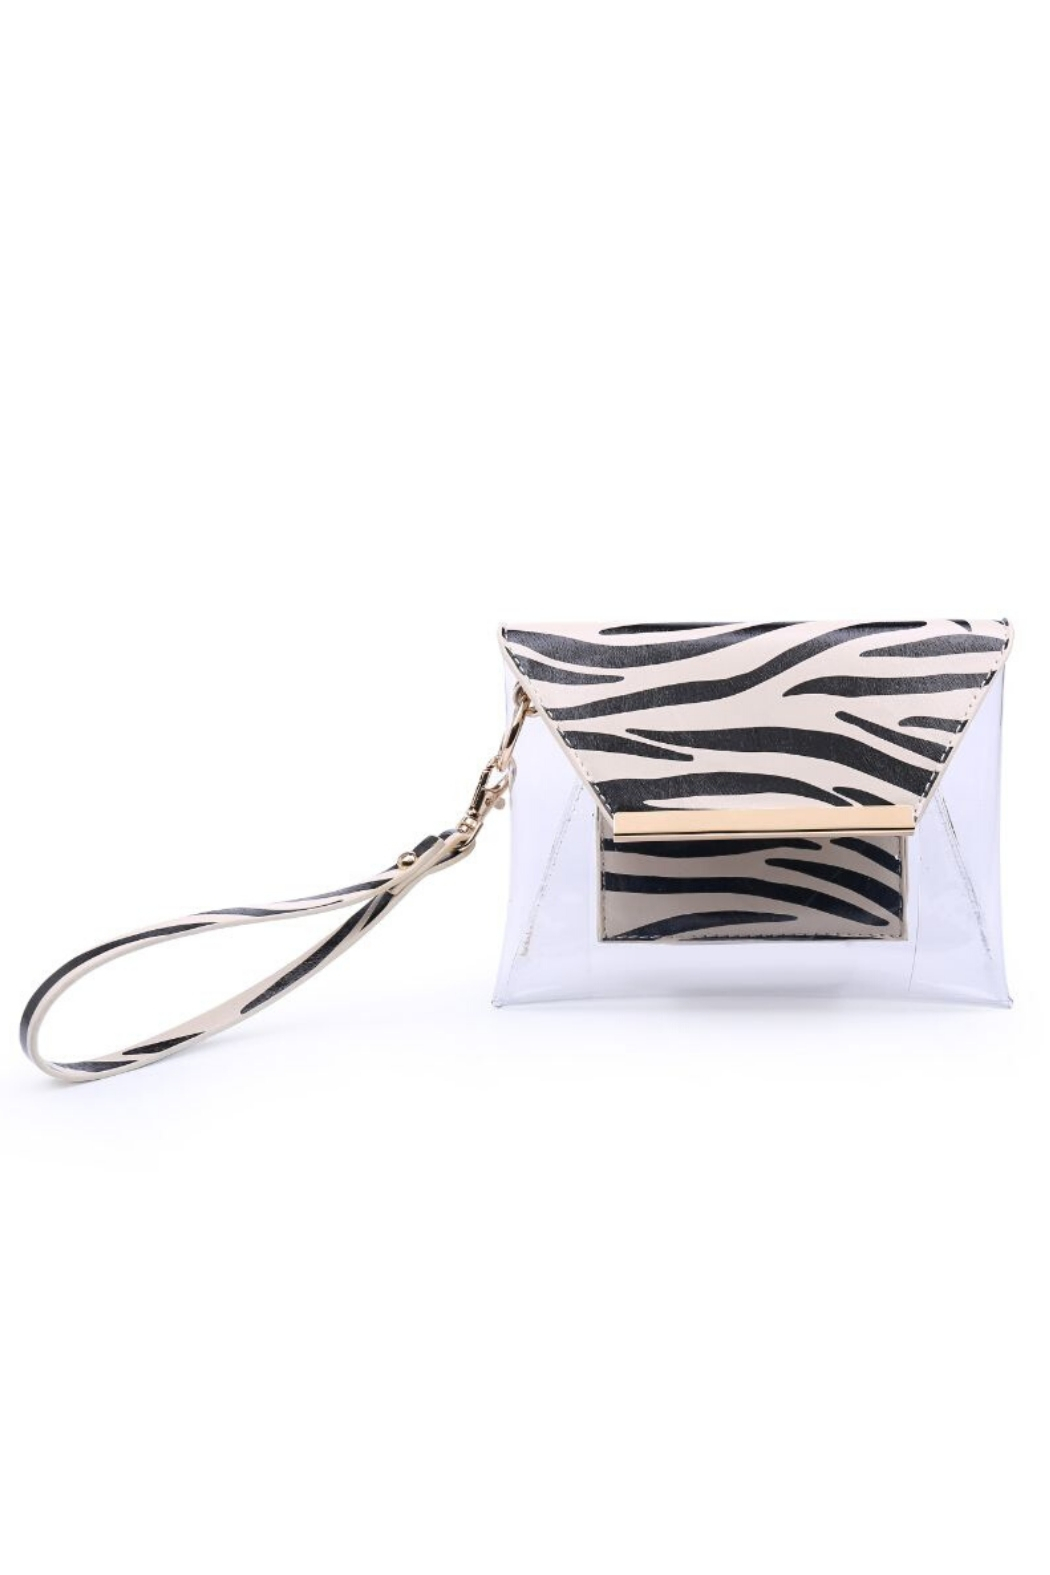 Urban Expressions Reese Zebra Clear Wristlet - Main Image